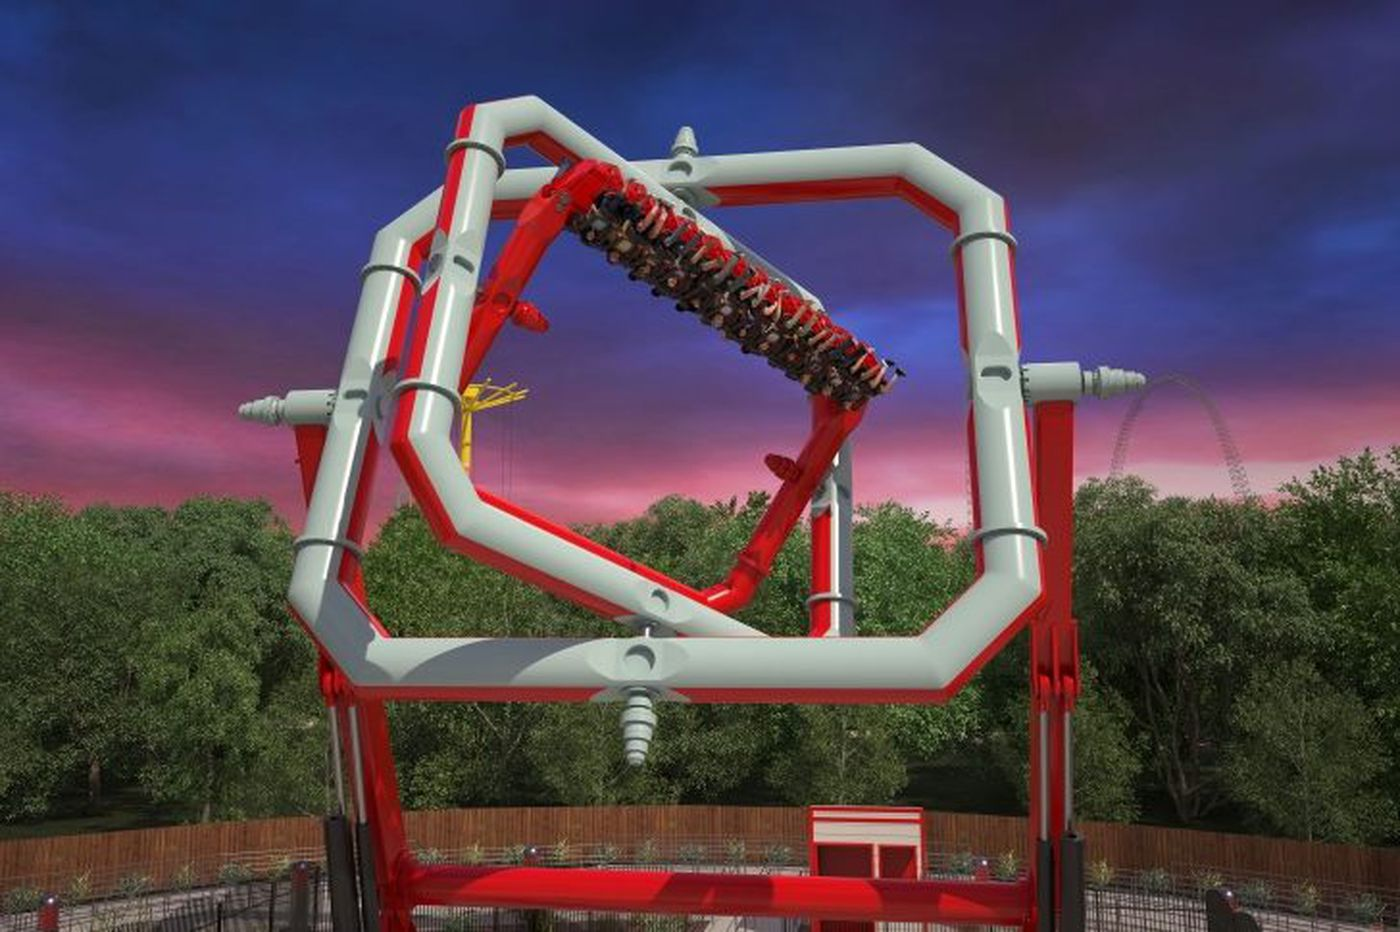 Six Flags to open anti-gravity Cyborg ride in 2018